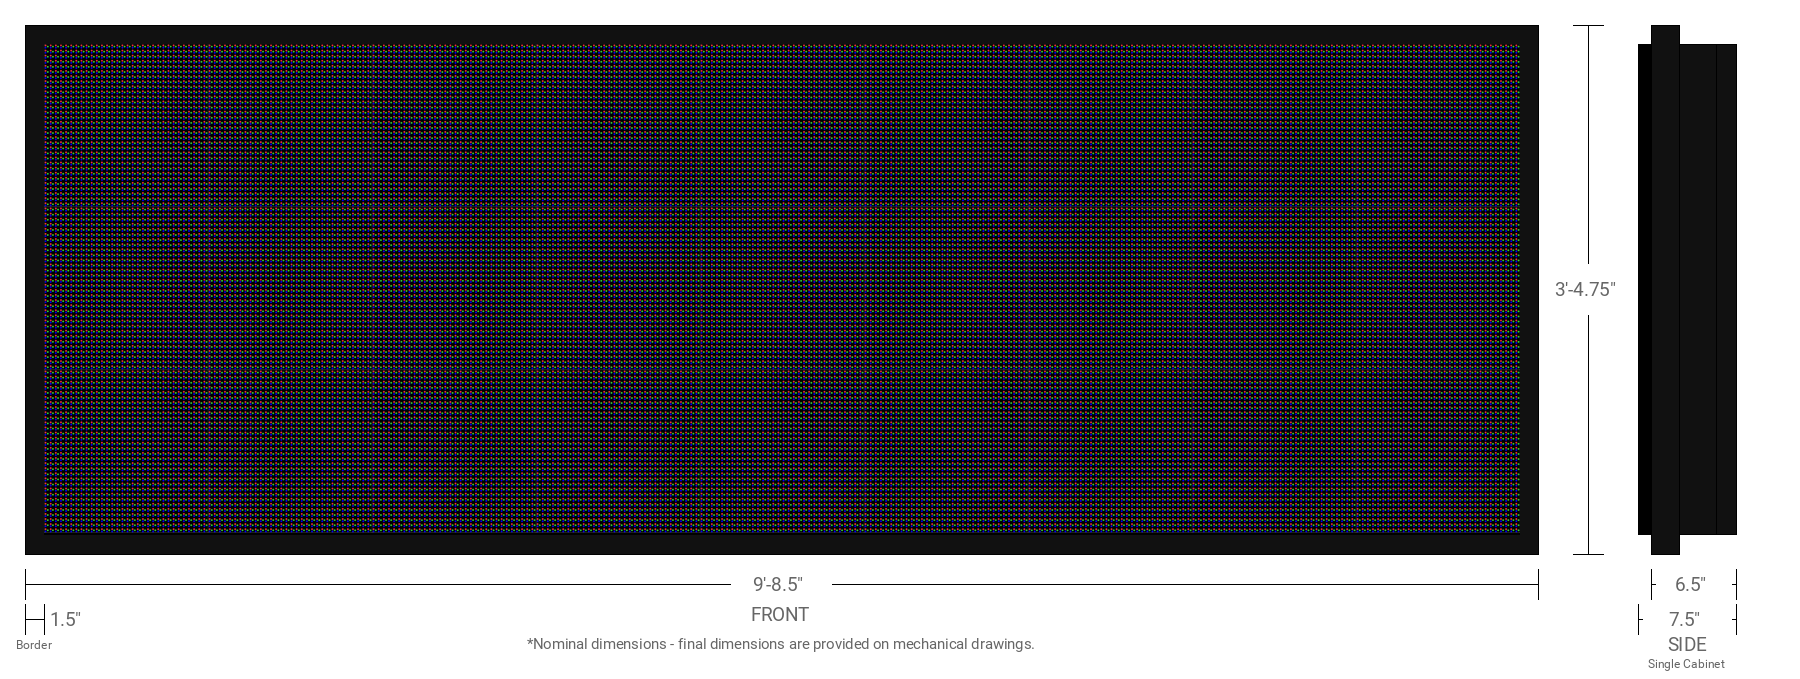 Polaris 10mm 96x288 Double Sided Full Color LED Display